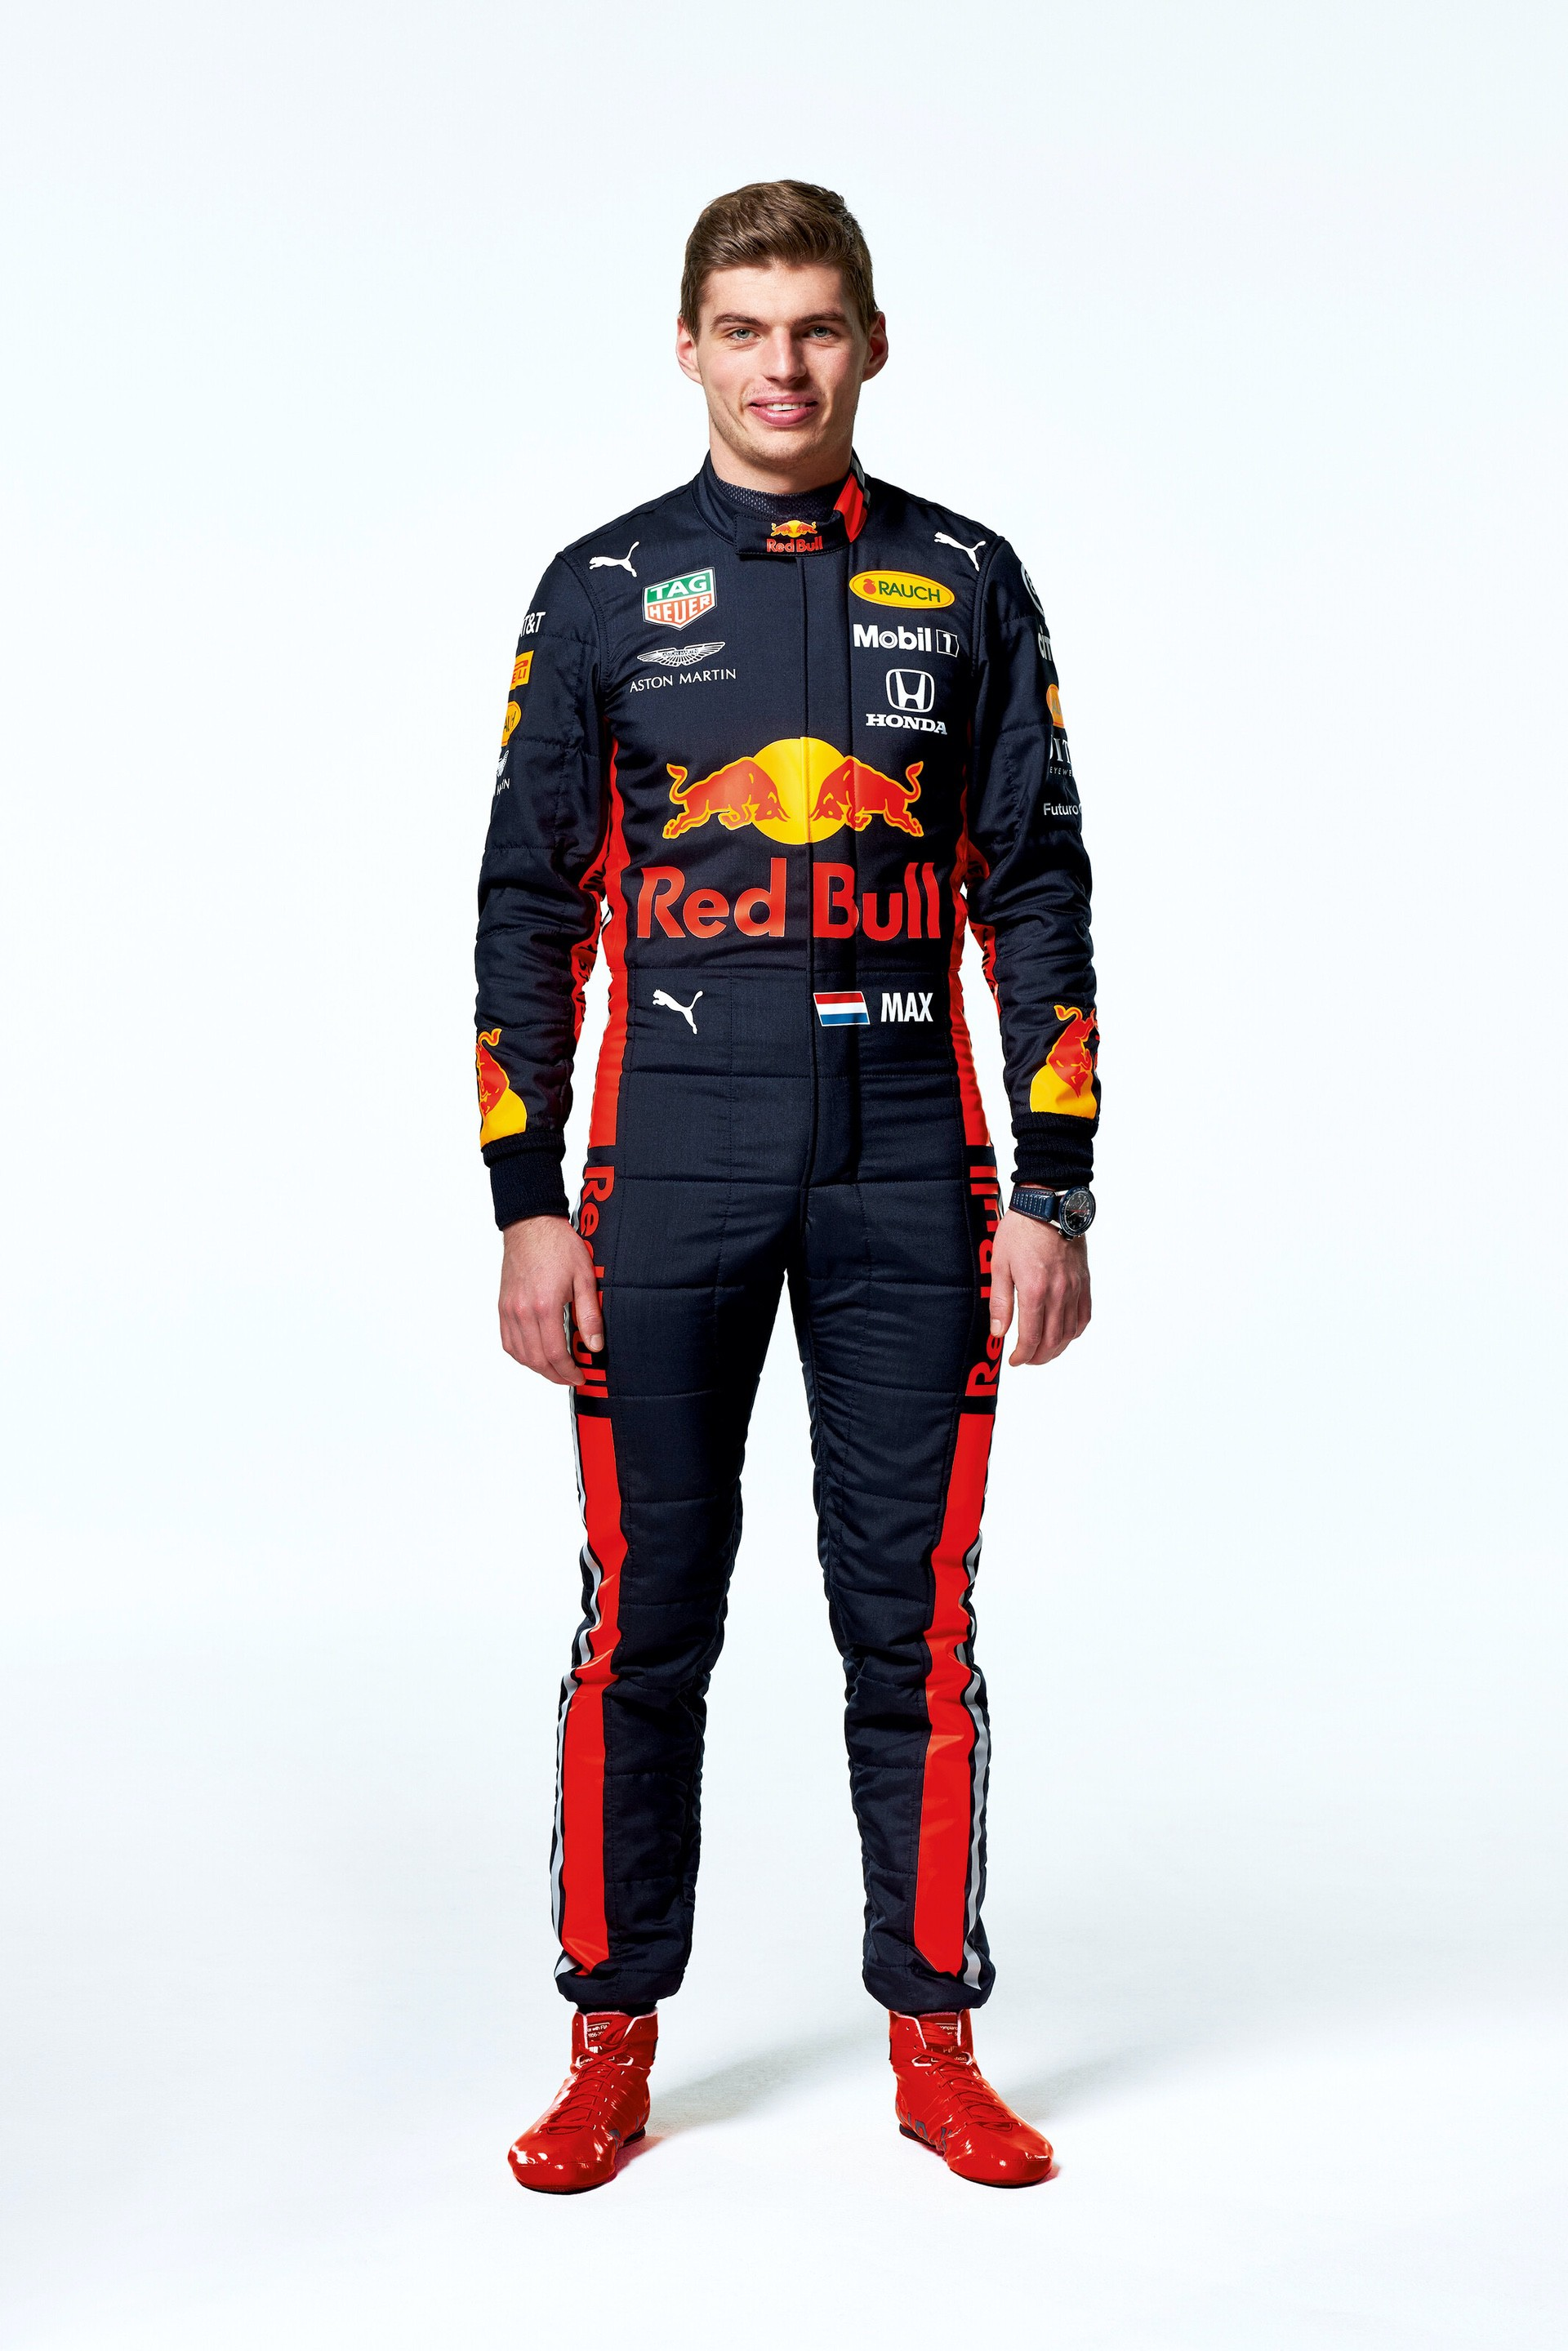 Max Verstappen seen during the Red Bull Racing 2019 Studio Shoot, February 2019, United Kingdom // Dustin Snipes/Red Bull Content Pool // AP-1YFPFH7YW1W11 // Usage for editorial use only // Please go to www.redbullcontentpool.com for further information. //